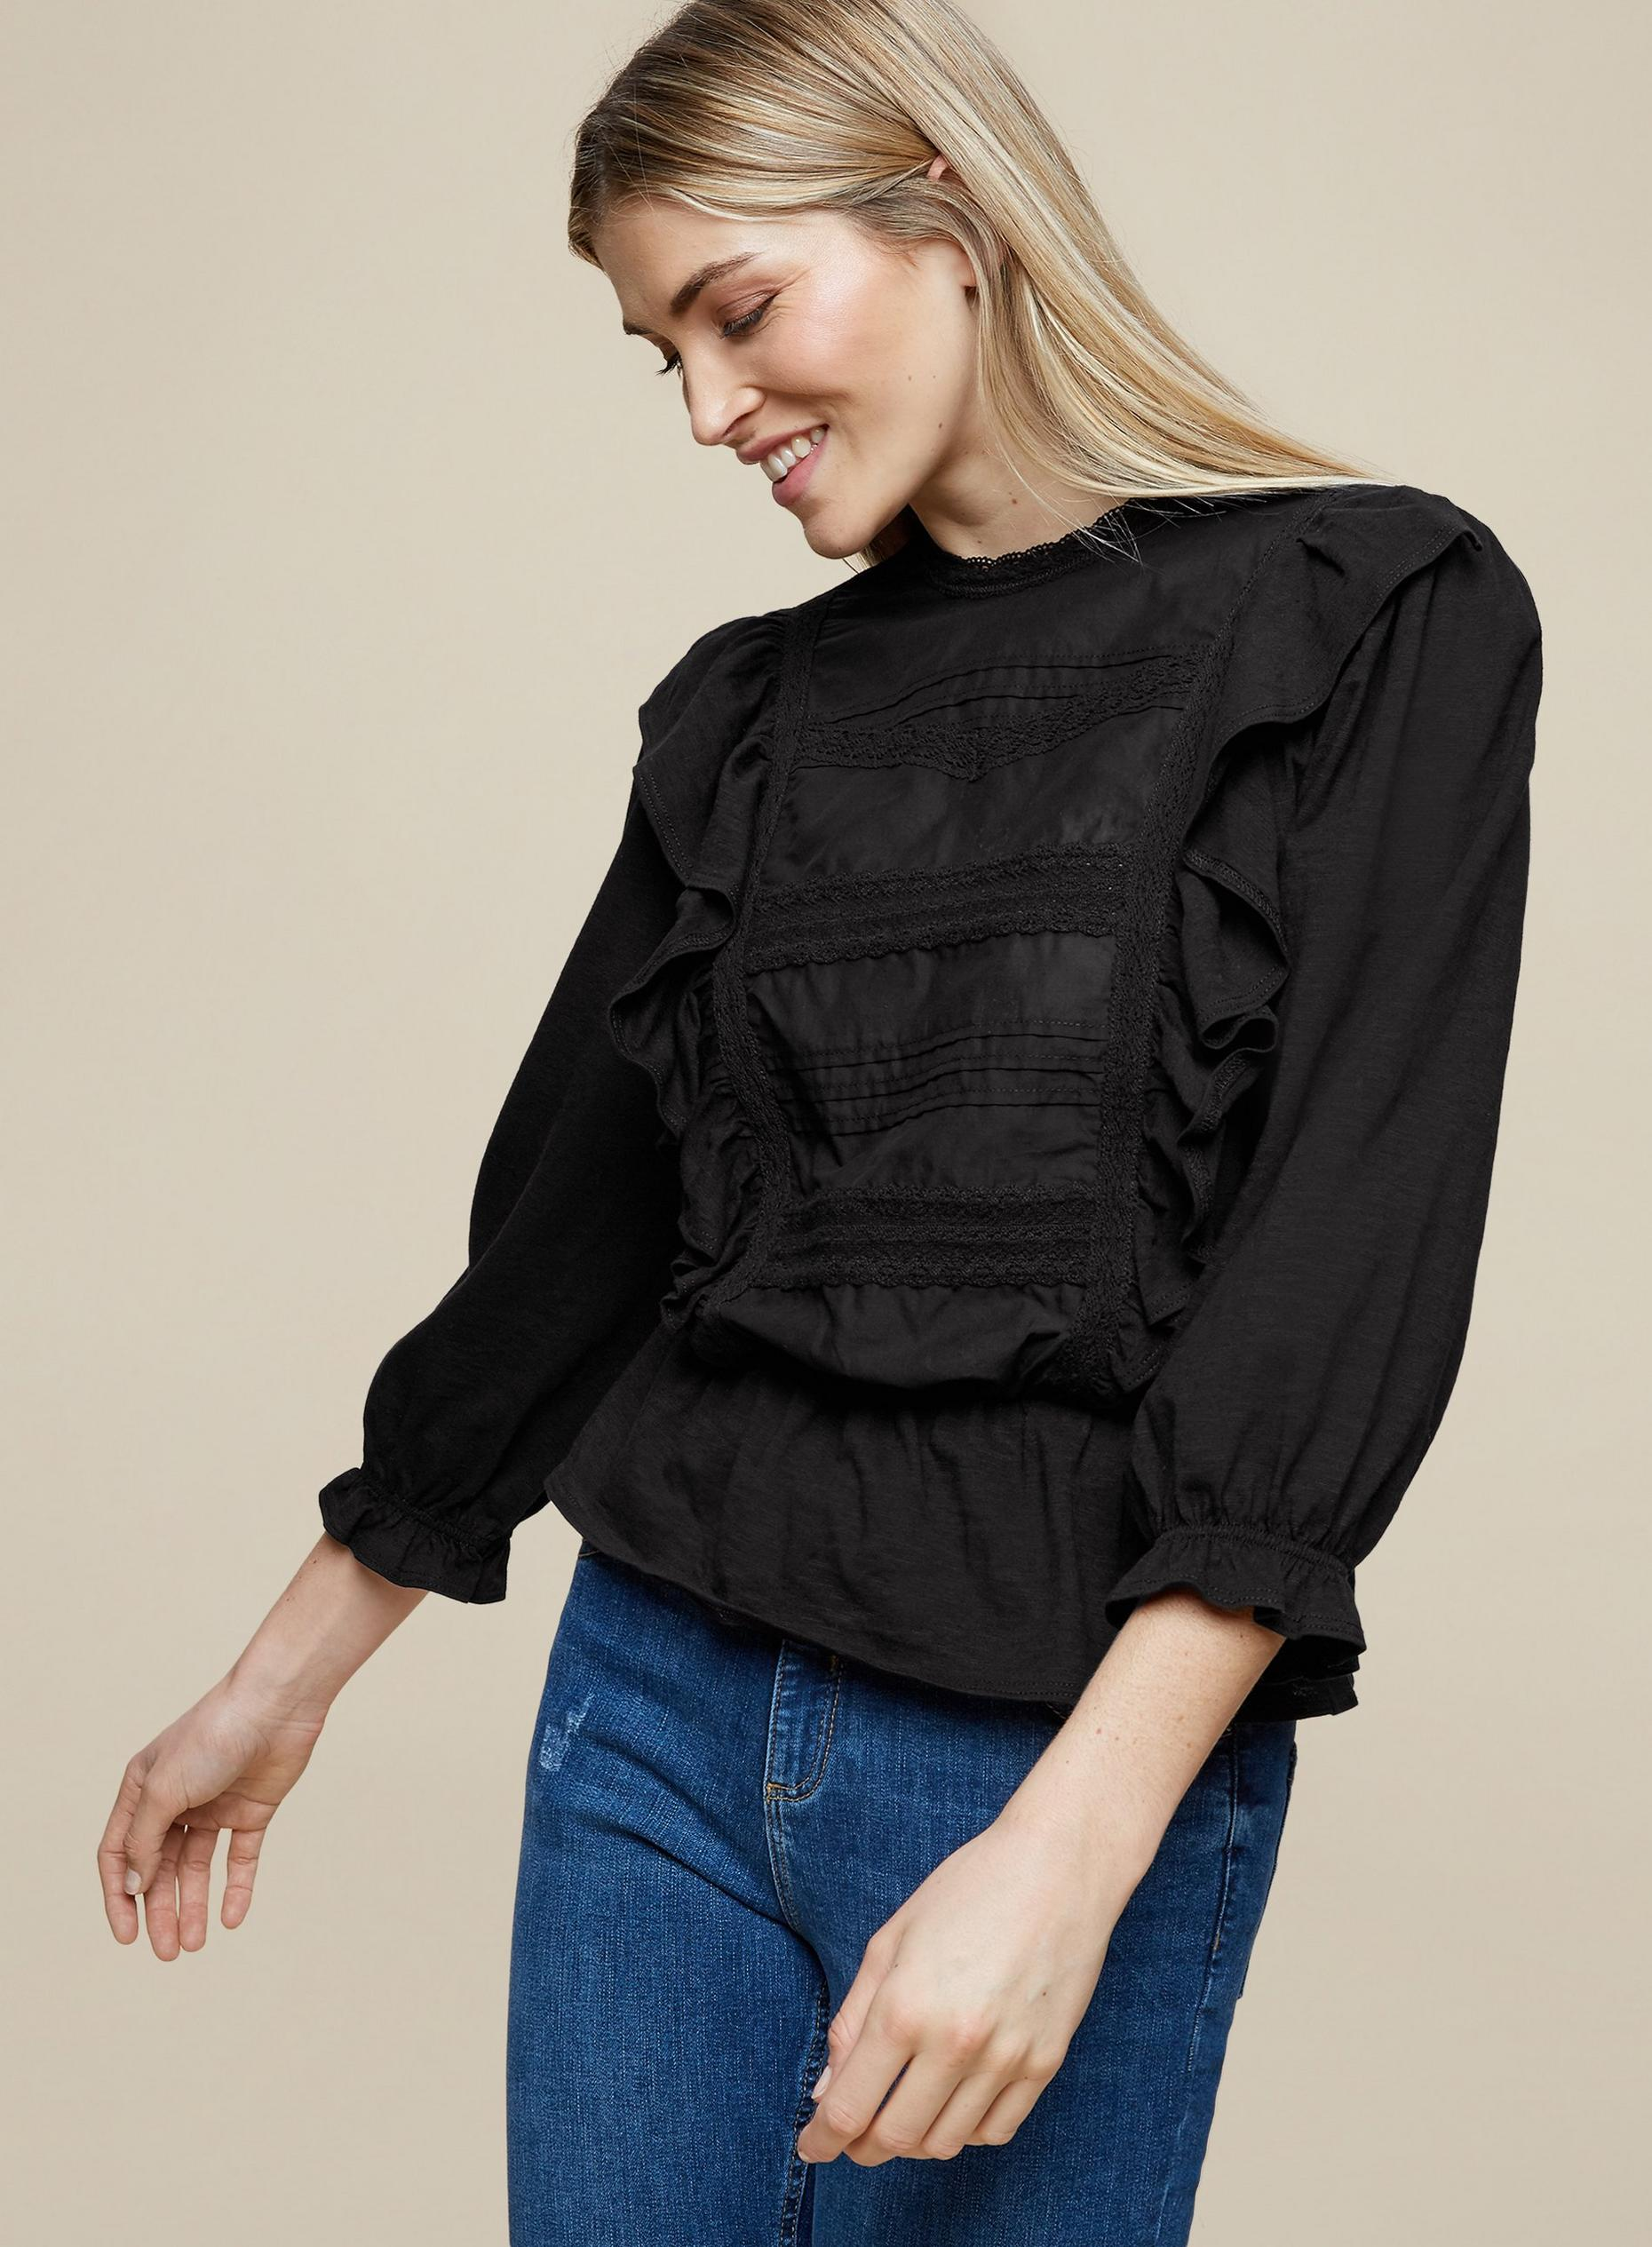 Pintuck Ruffle Trim Top